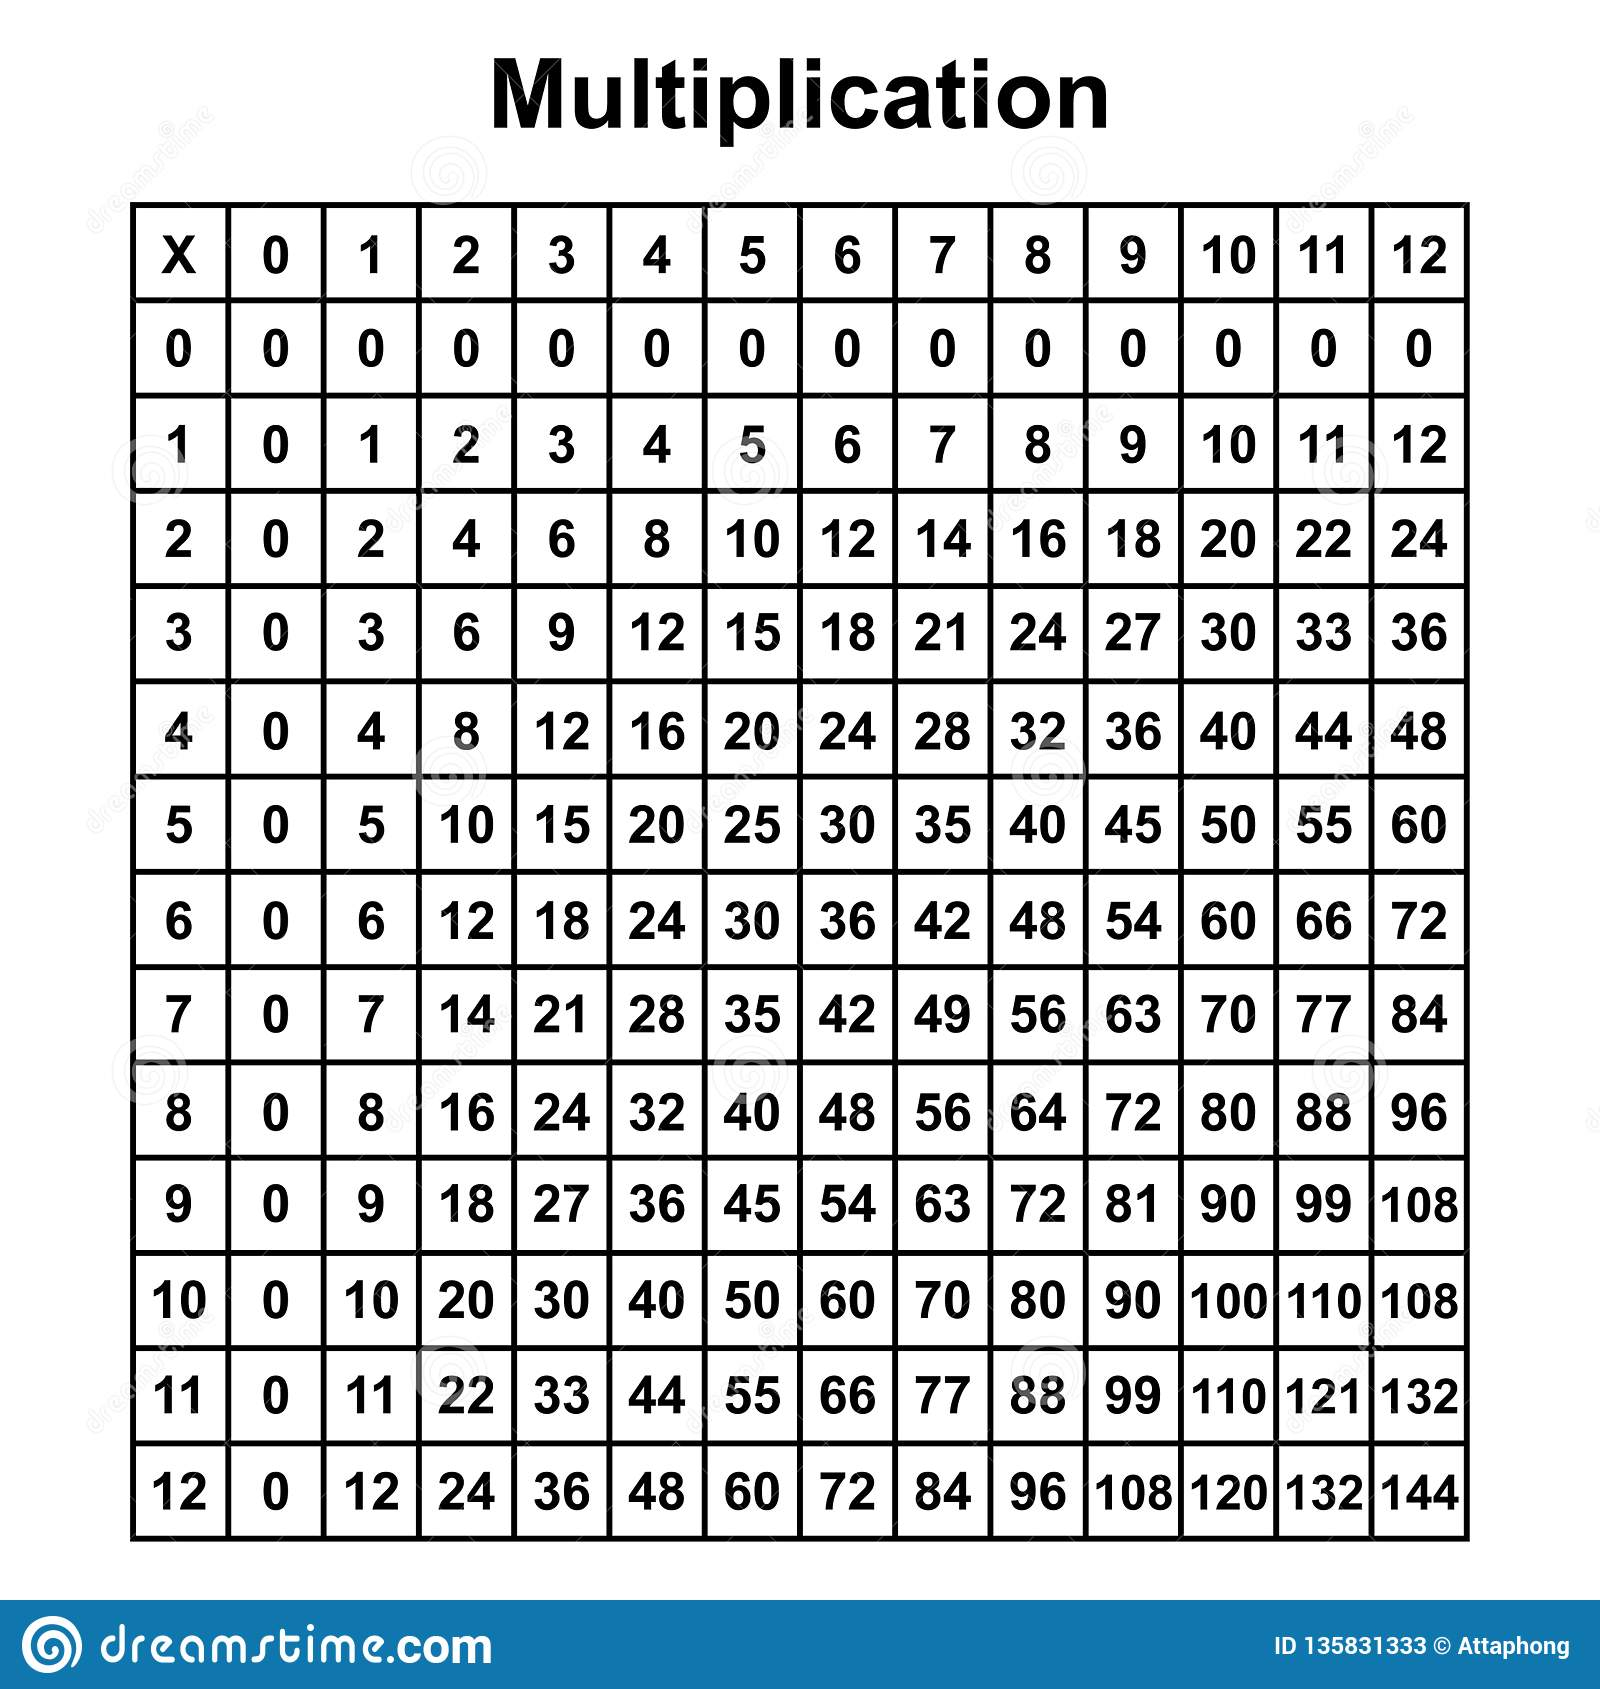 Multiplication Table Chart Or Multiplication Table Printable for Printable Multiplication Table Chart